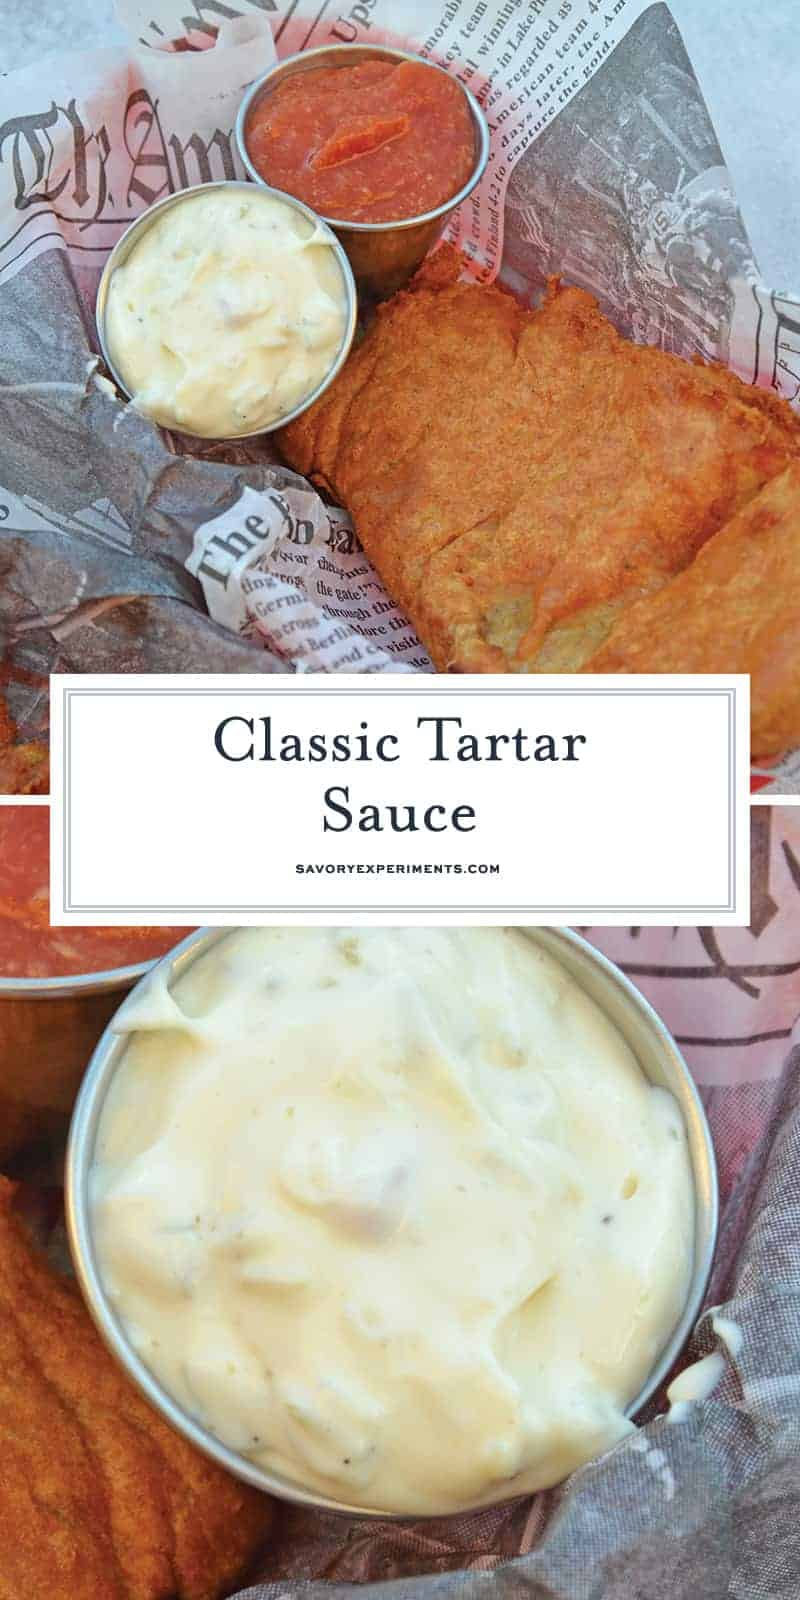 With just 6 main ingredients, this homemade tartar sauce recipe can be made in just minutes. You'll never buy tartar sauce at the store again! #tartarsauce #tartarsaucerecipe #homemadetartarsauce www.savoryexperiments.com